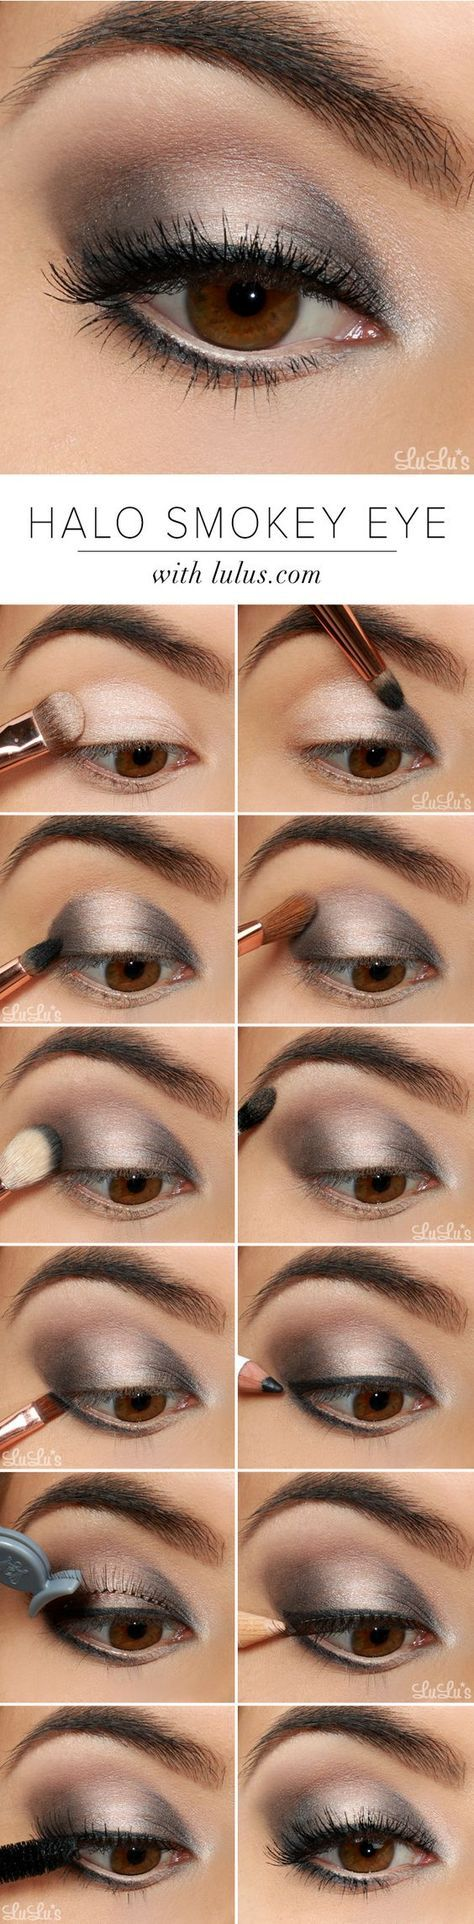 11 Simple Step By Step Make Up Tutorials For Beginners // # Beginner #Simple # for #Step #Tutorials